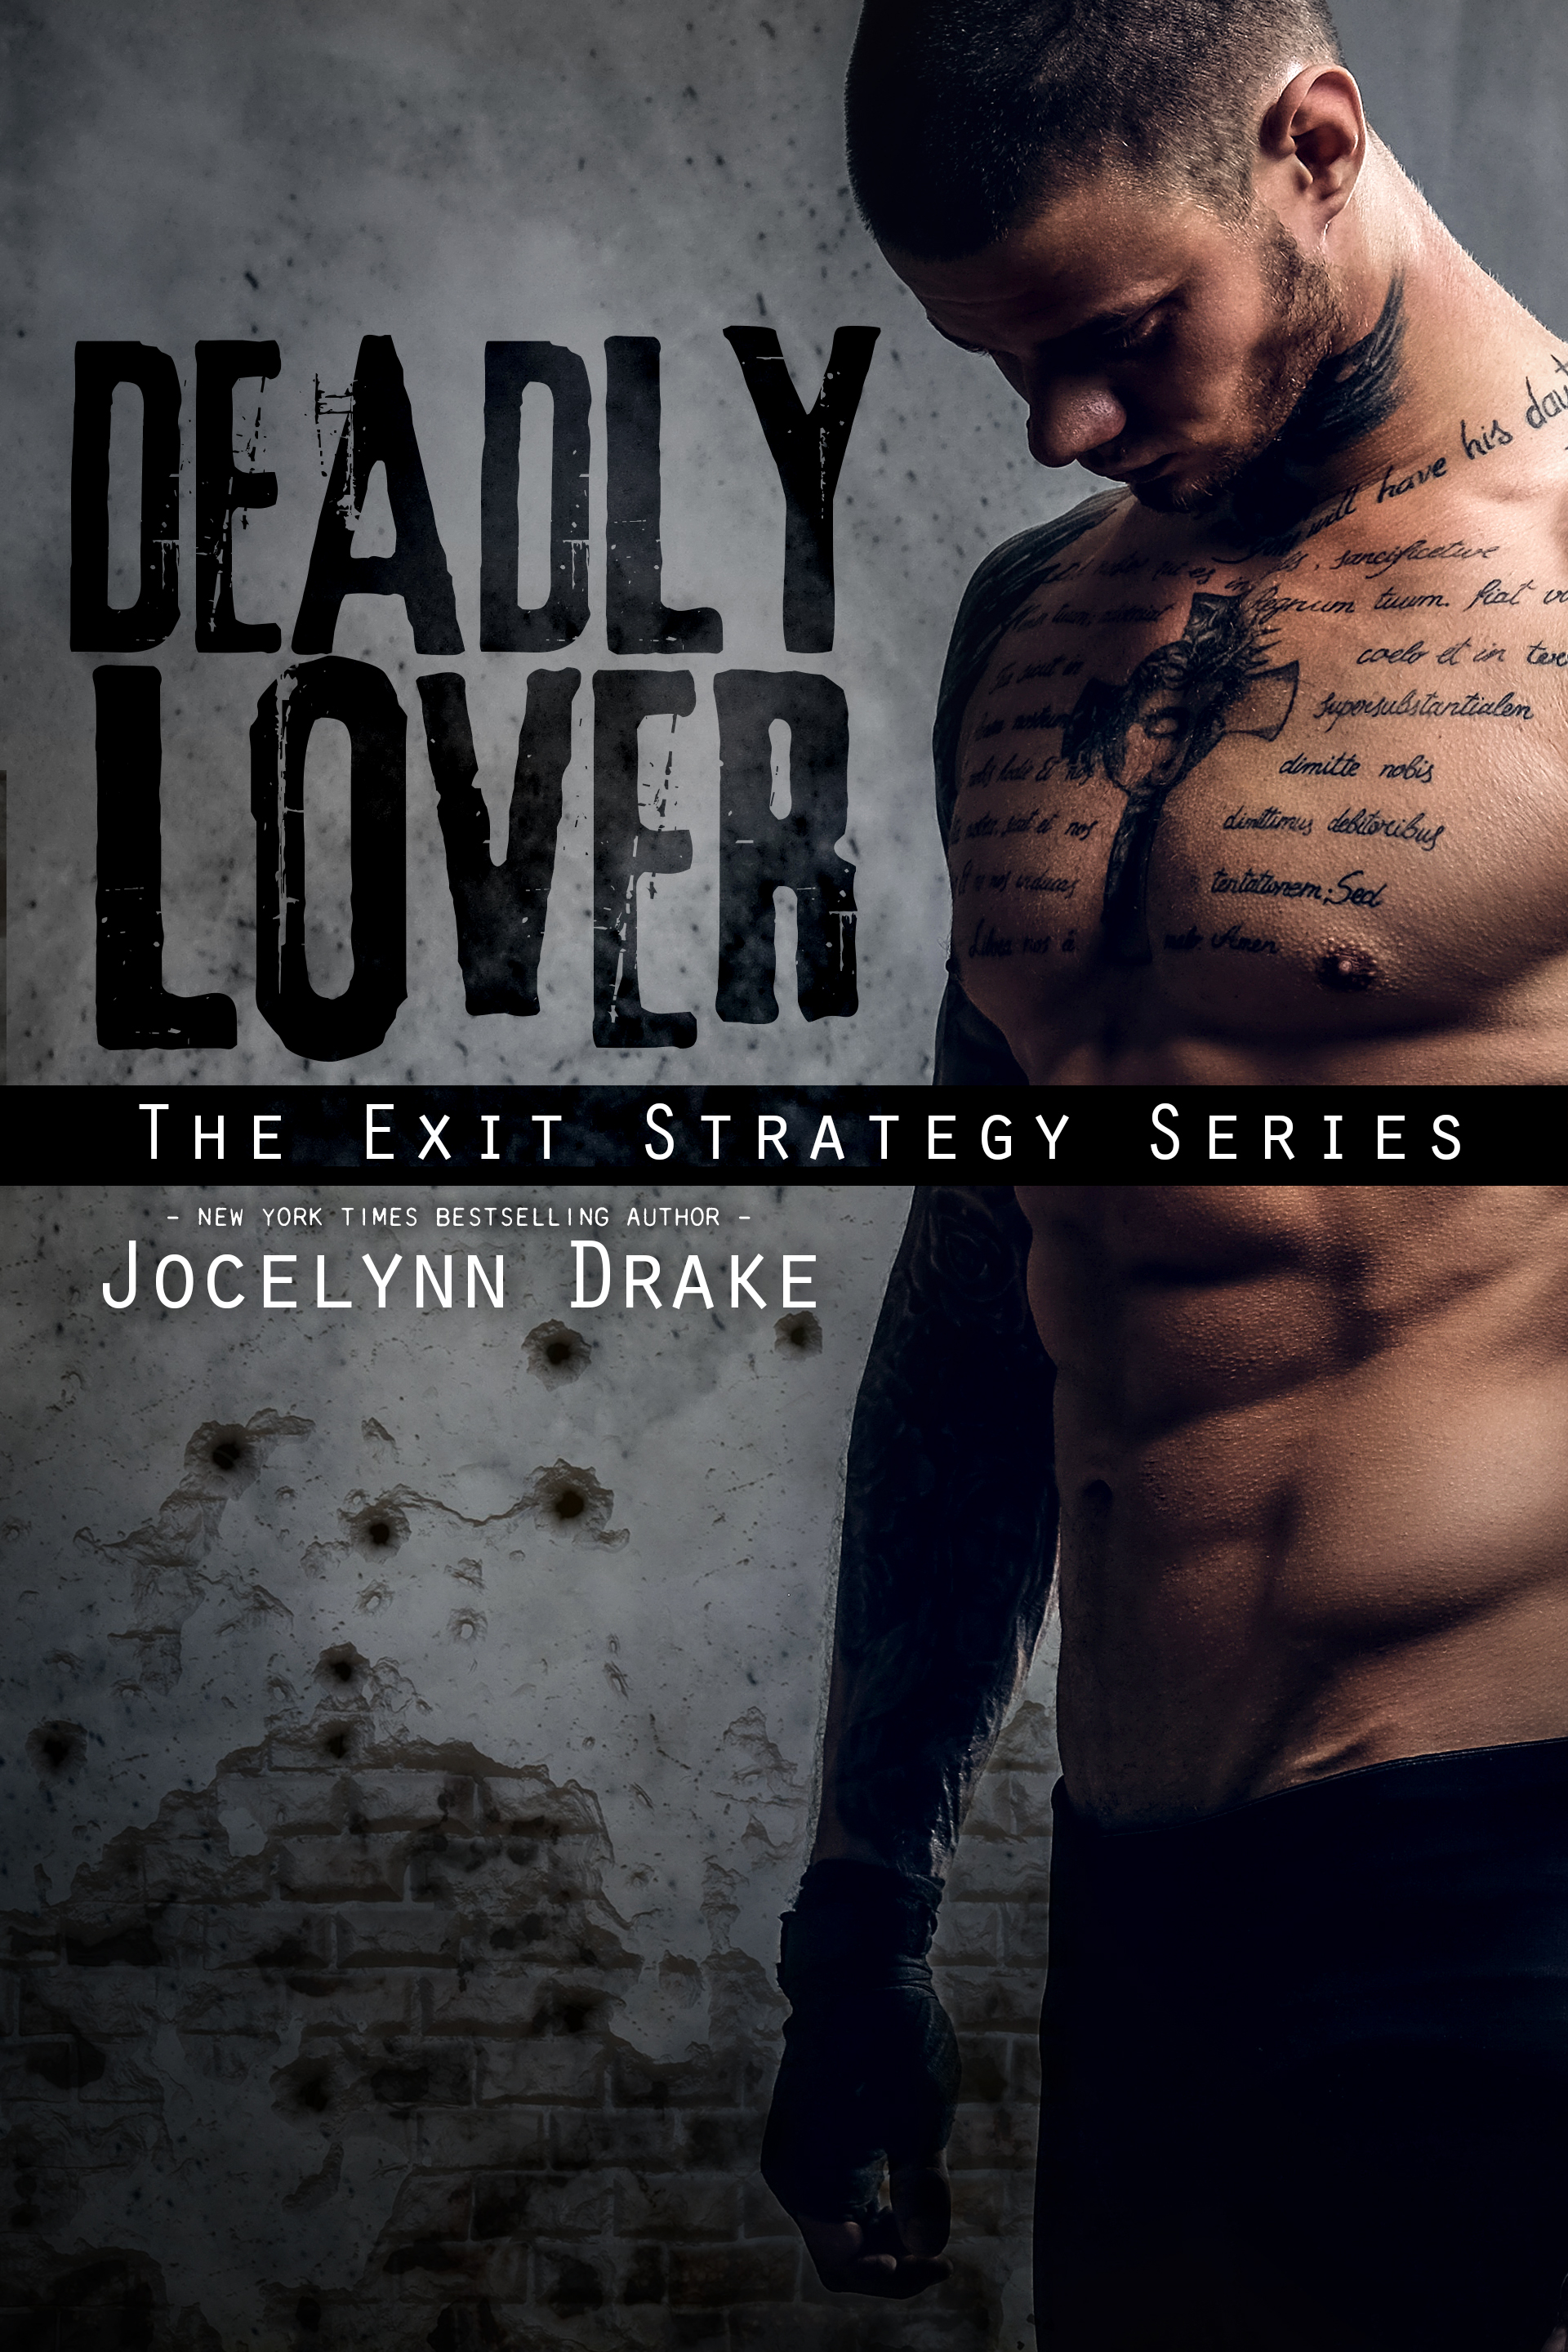 Review: Deadly Lover by Jocelynn Drake